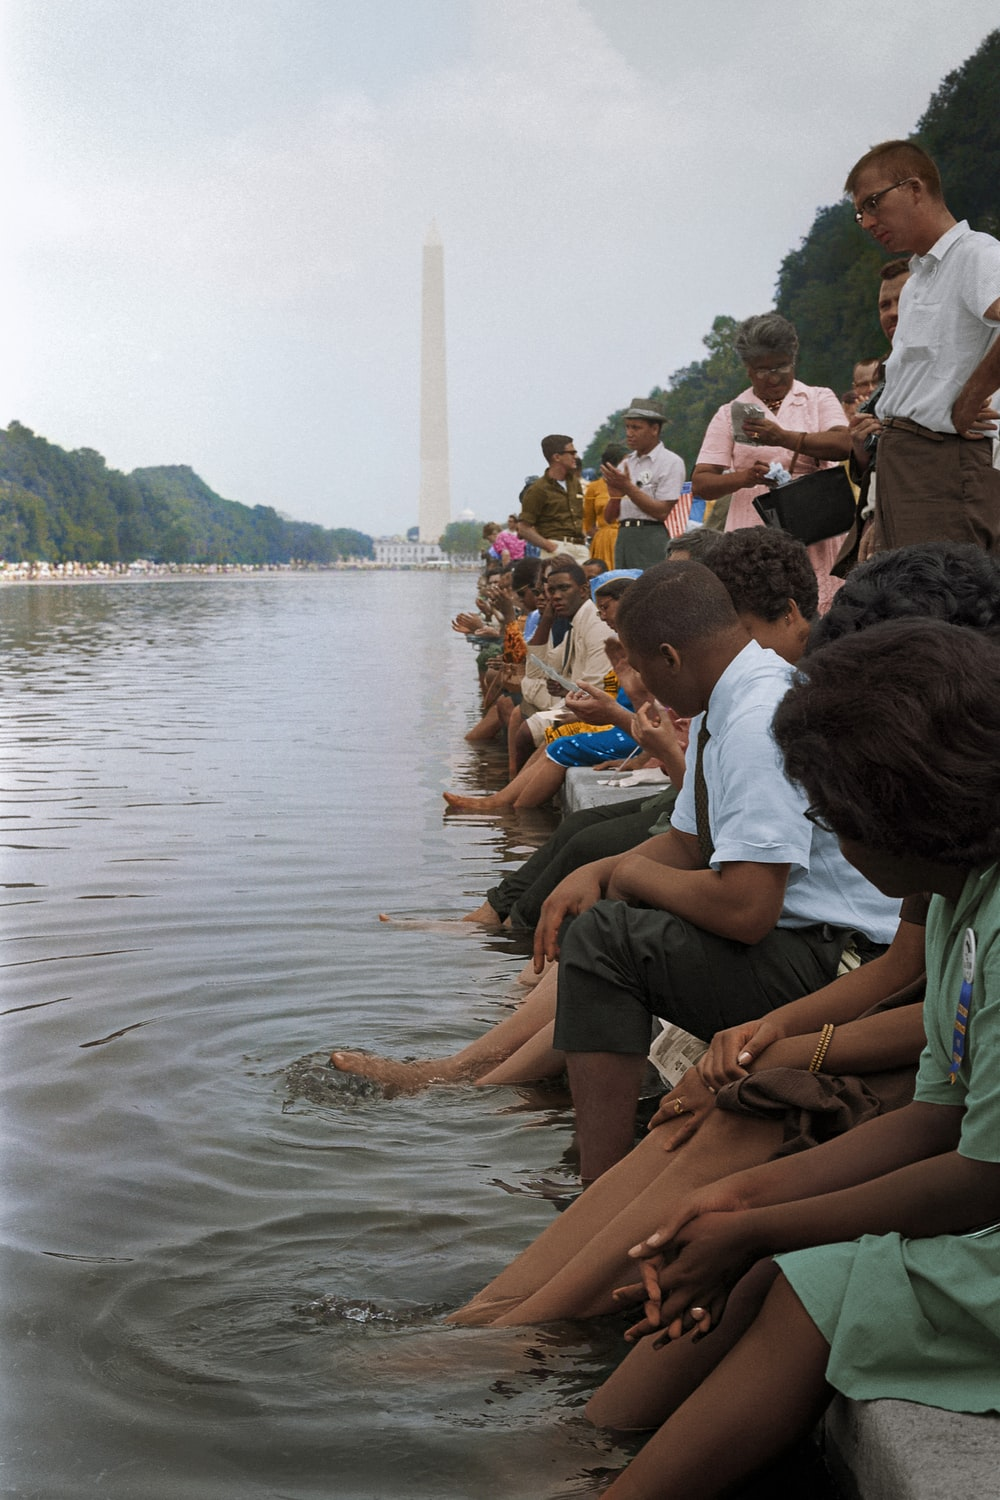 Demonstrators sit with their feet in the Reflecting Pool during the March on Washington in 1963